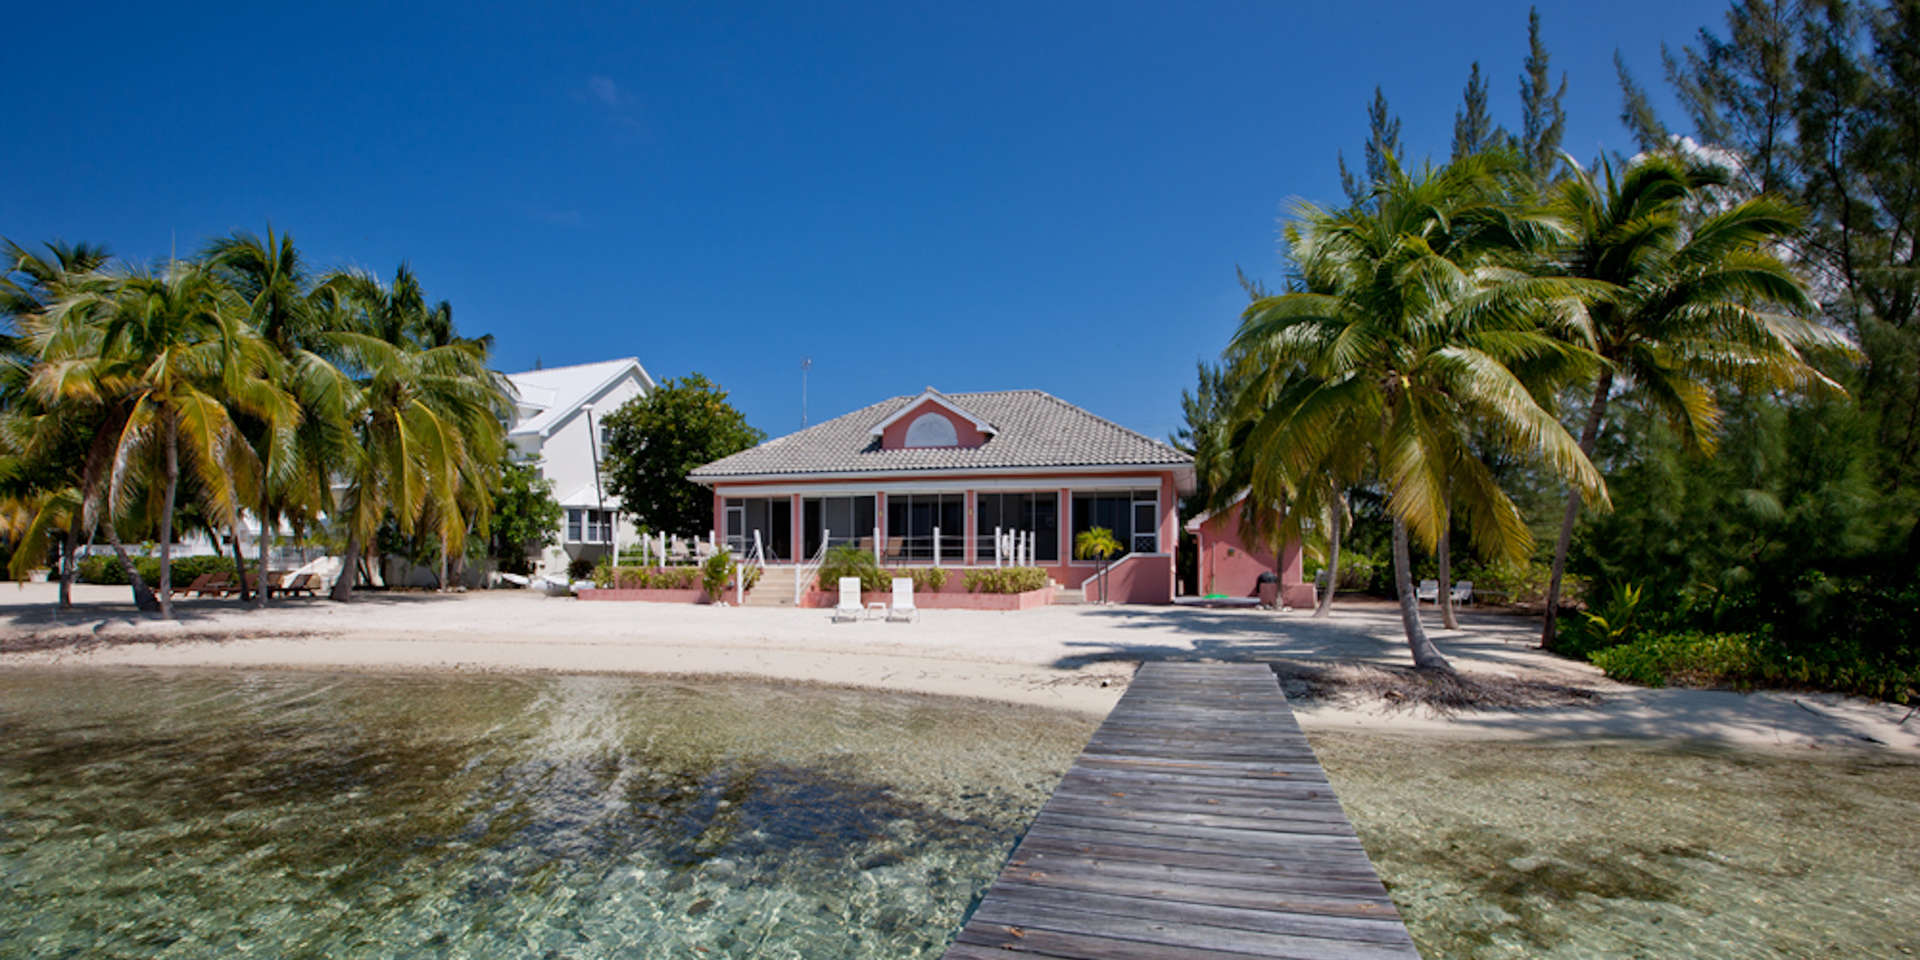 Luxury villa rentals caribbean - Cayman islands - Grand cayman - Cayman kai - Fantasea - Image 1/11